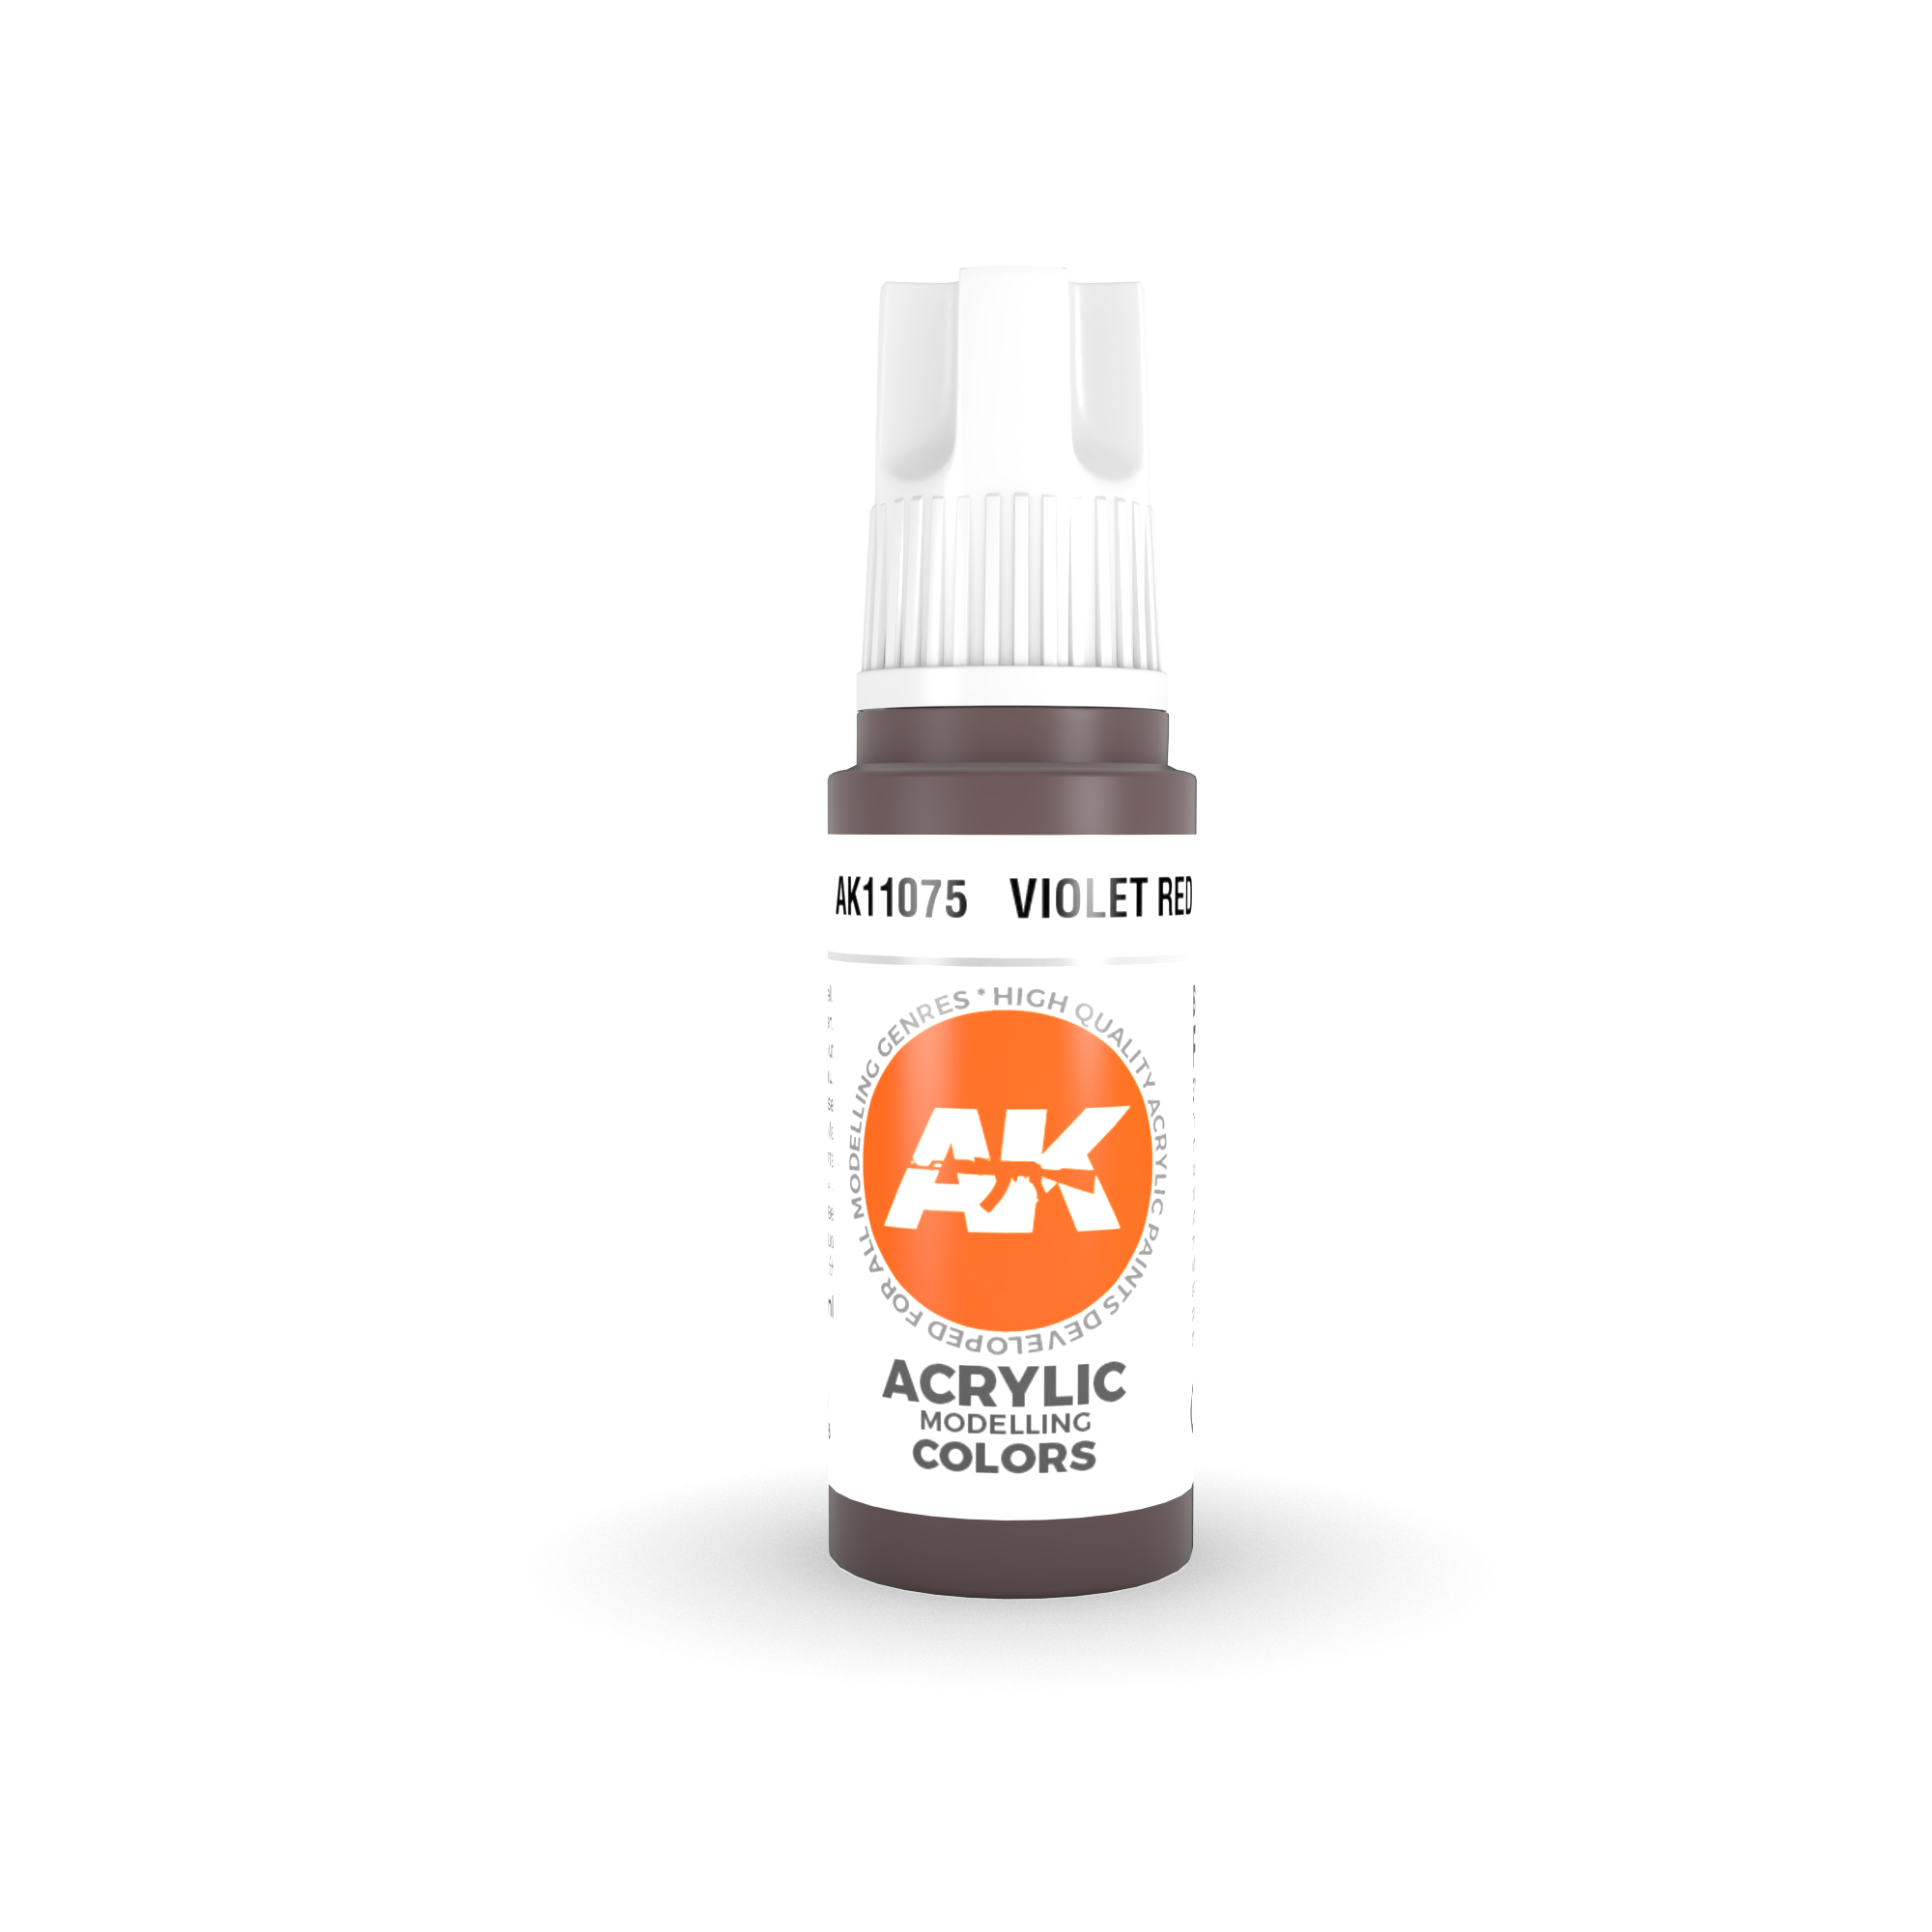 AK-Interactive Violet Red Acrylic Modelling Color - 17ml - AK-11075